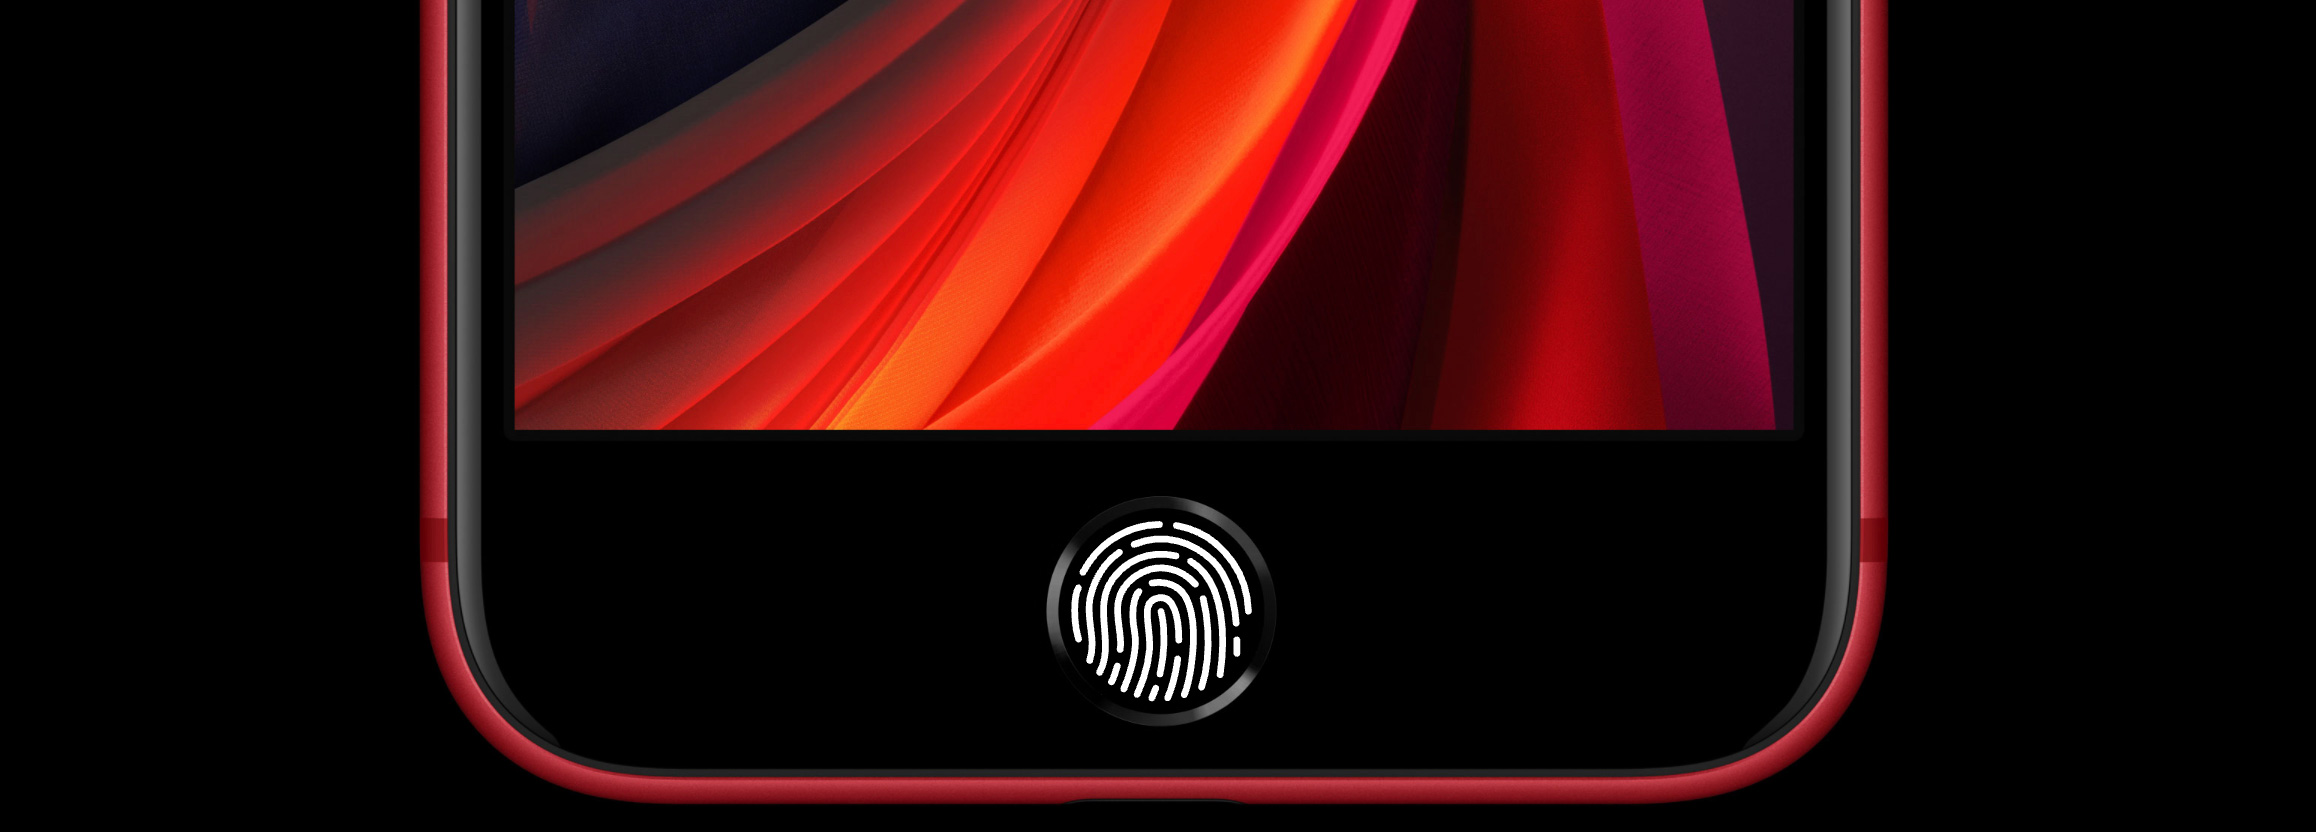 TouchID iPhone SE